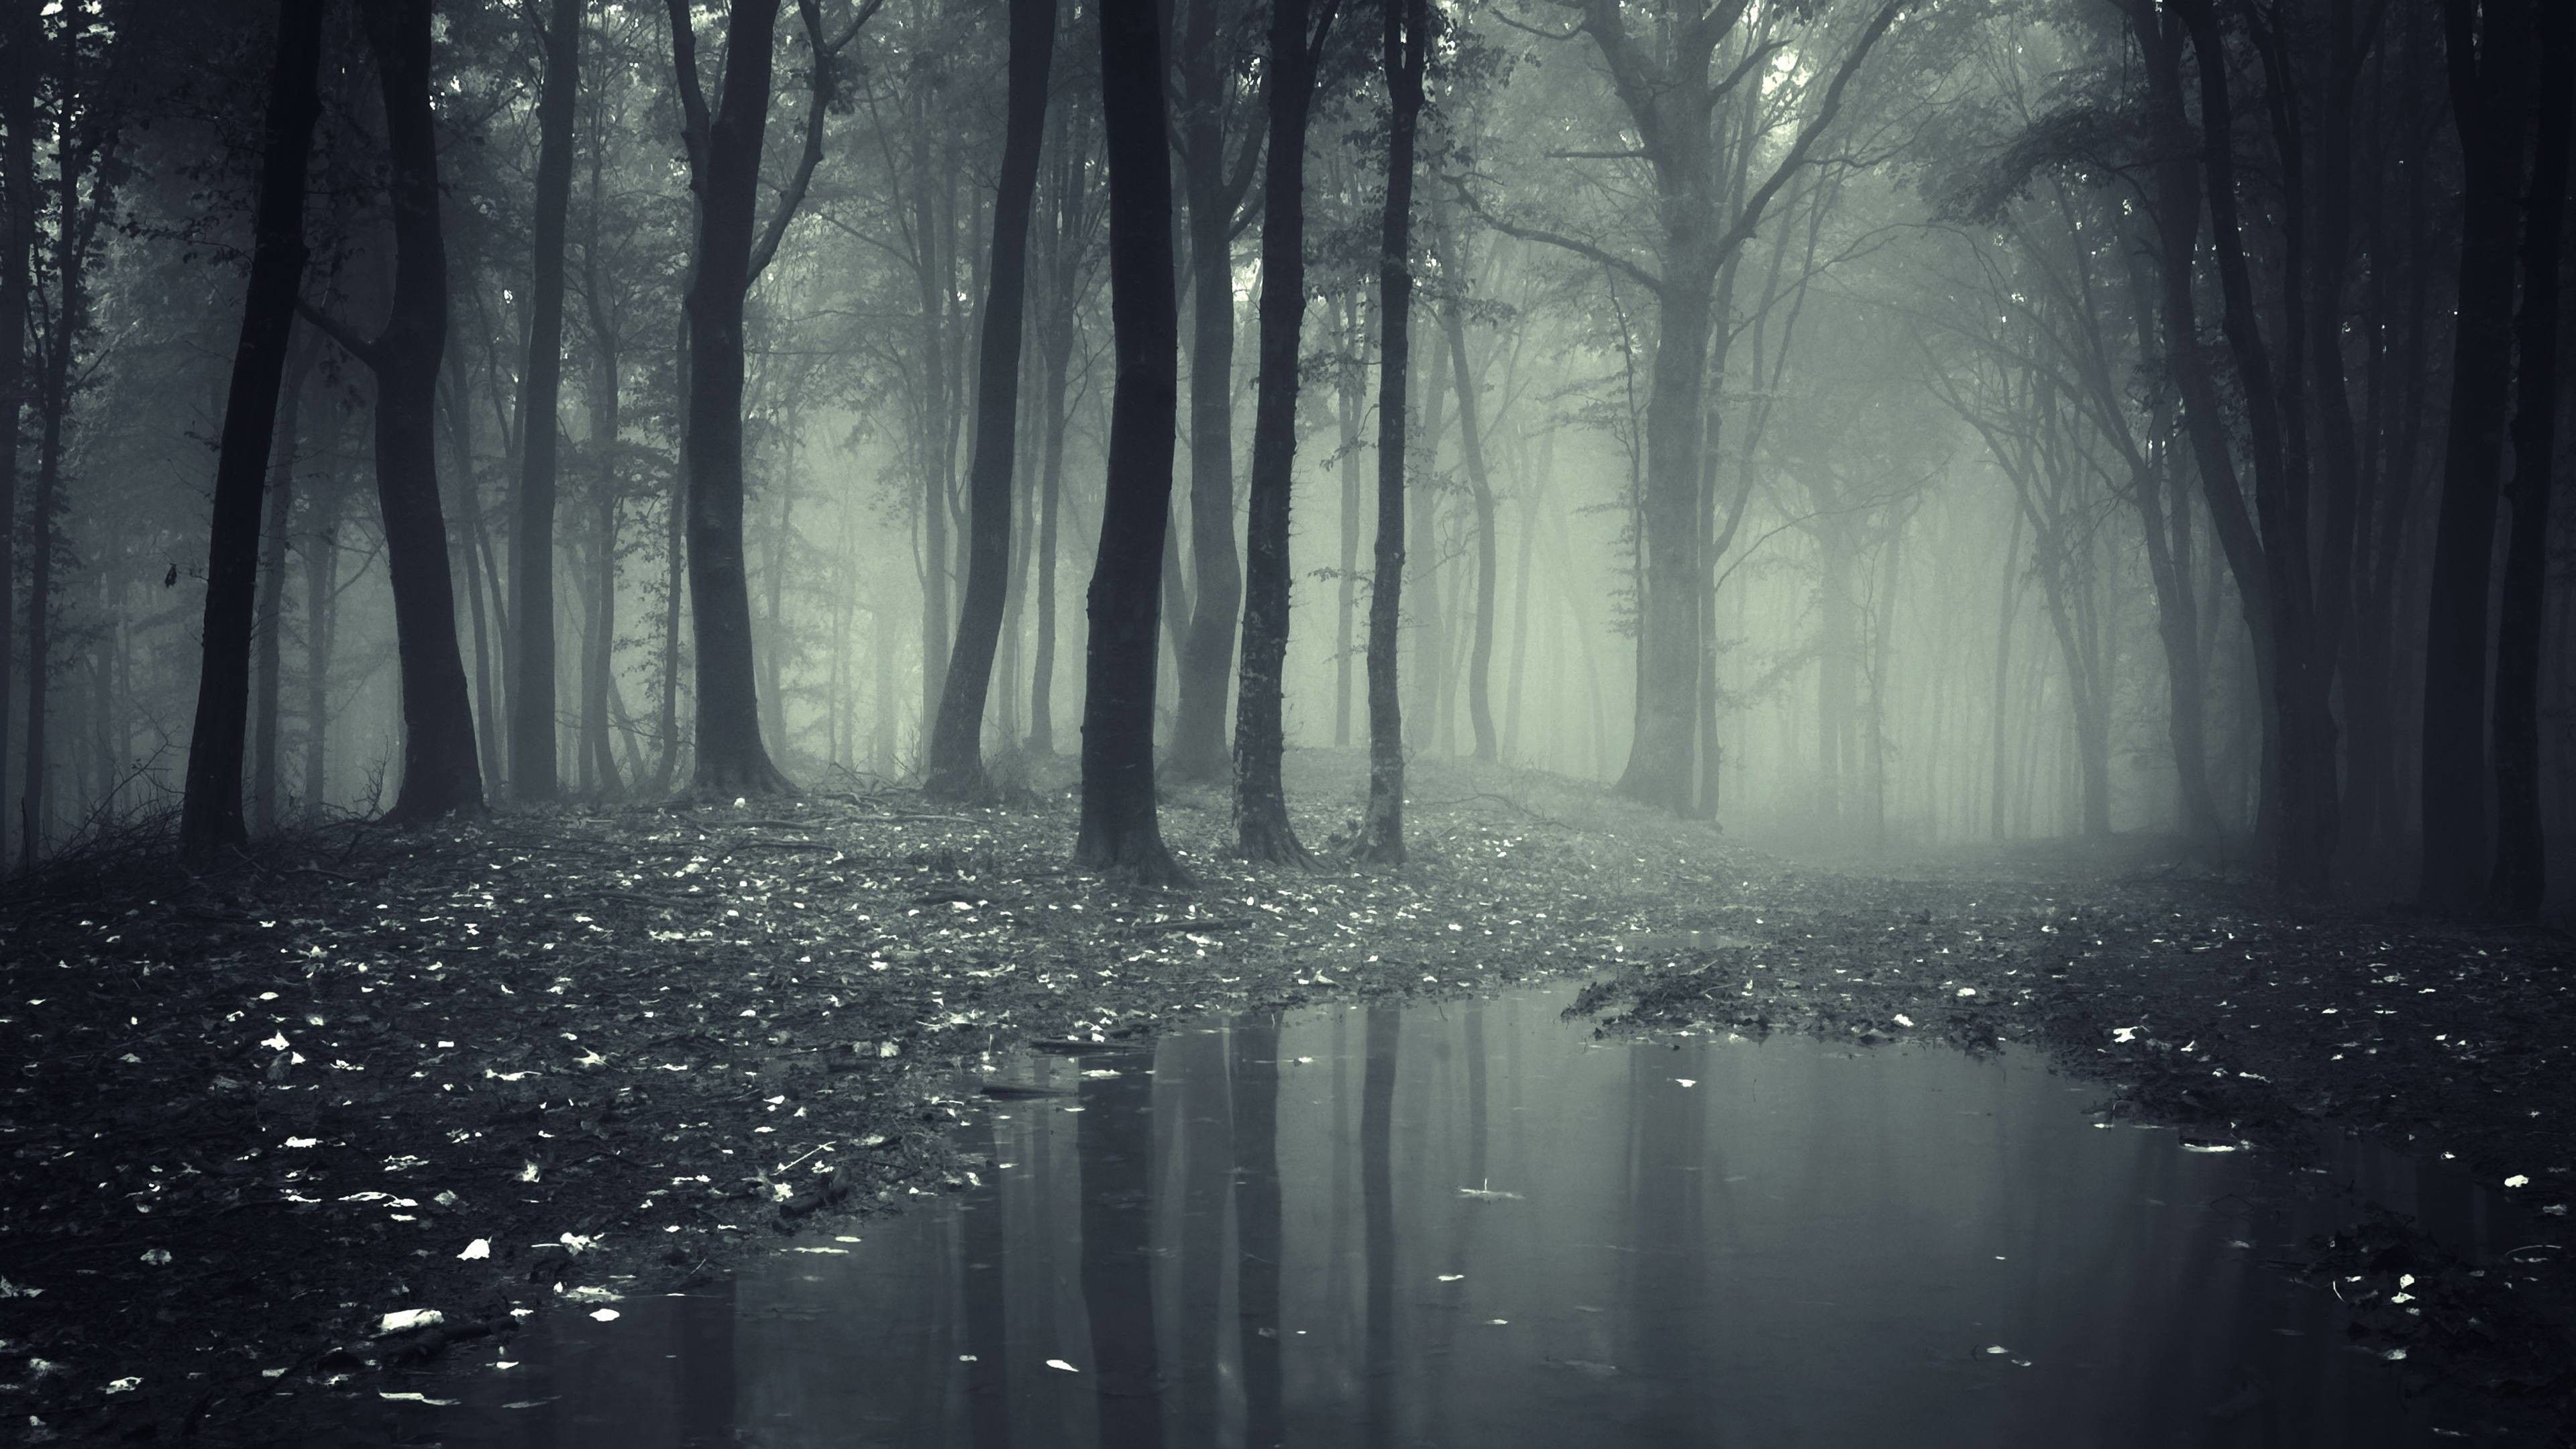 creepy forest wallpaper (66+ images)